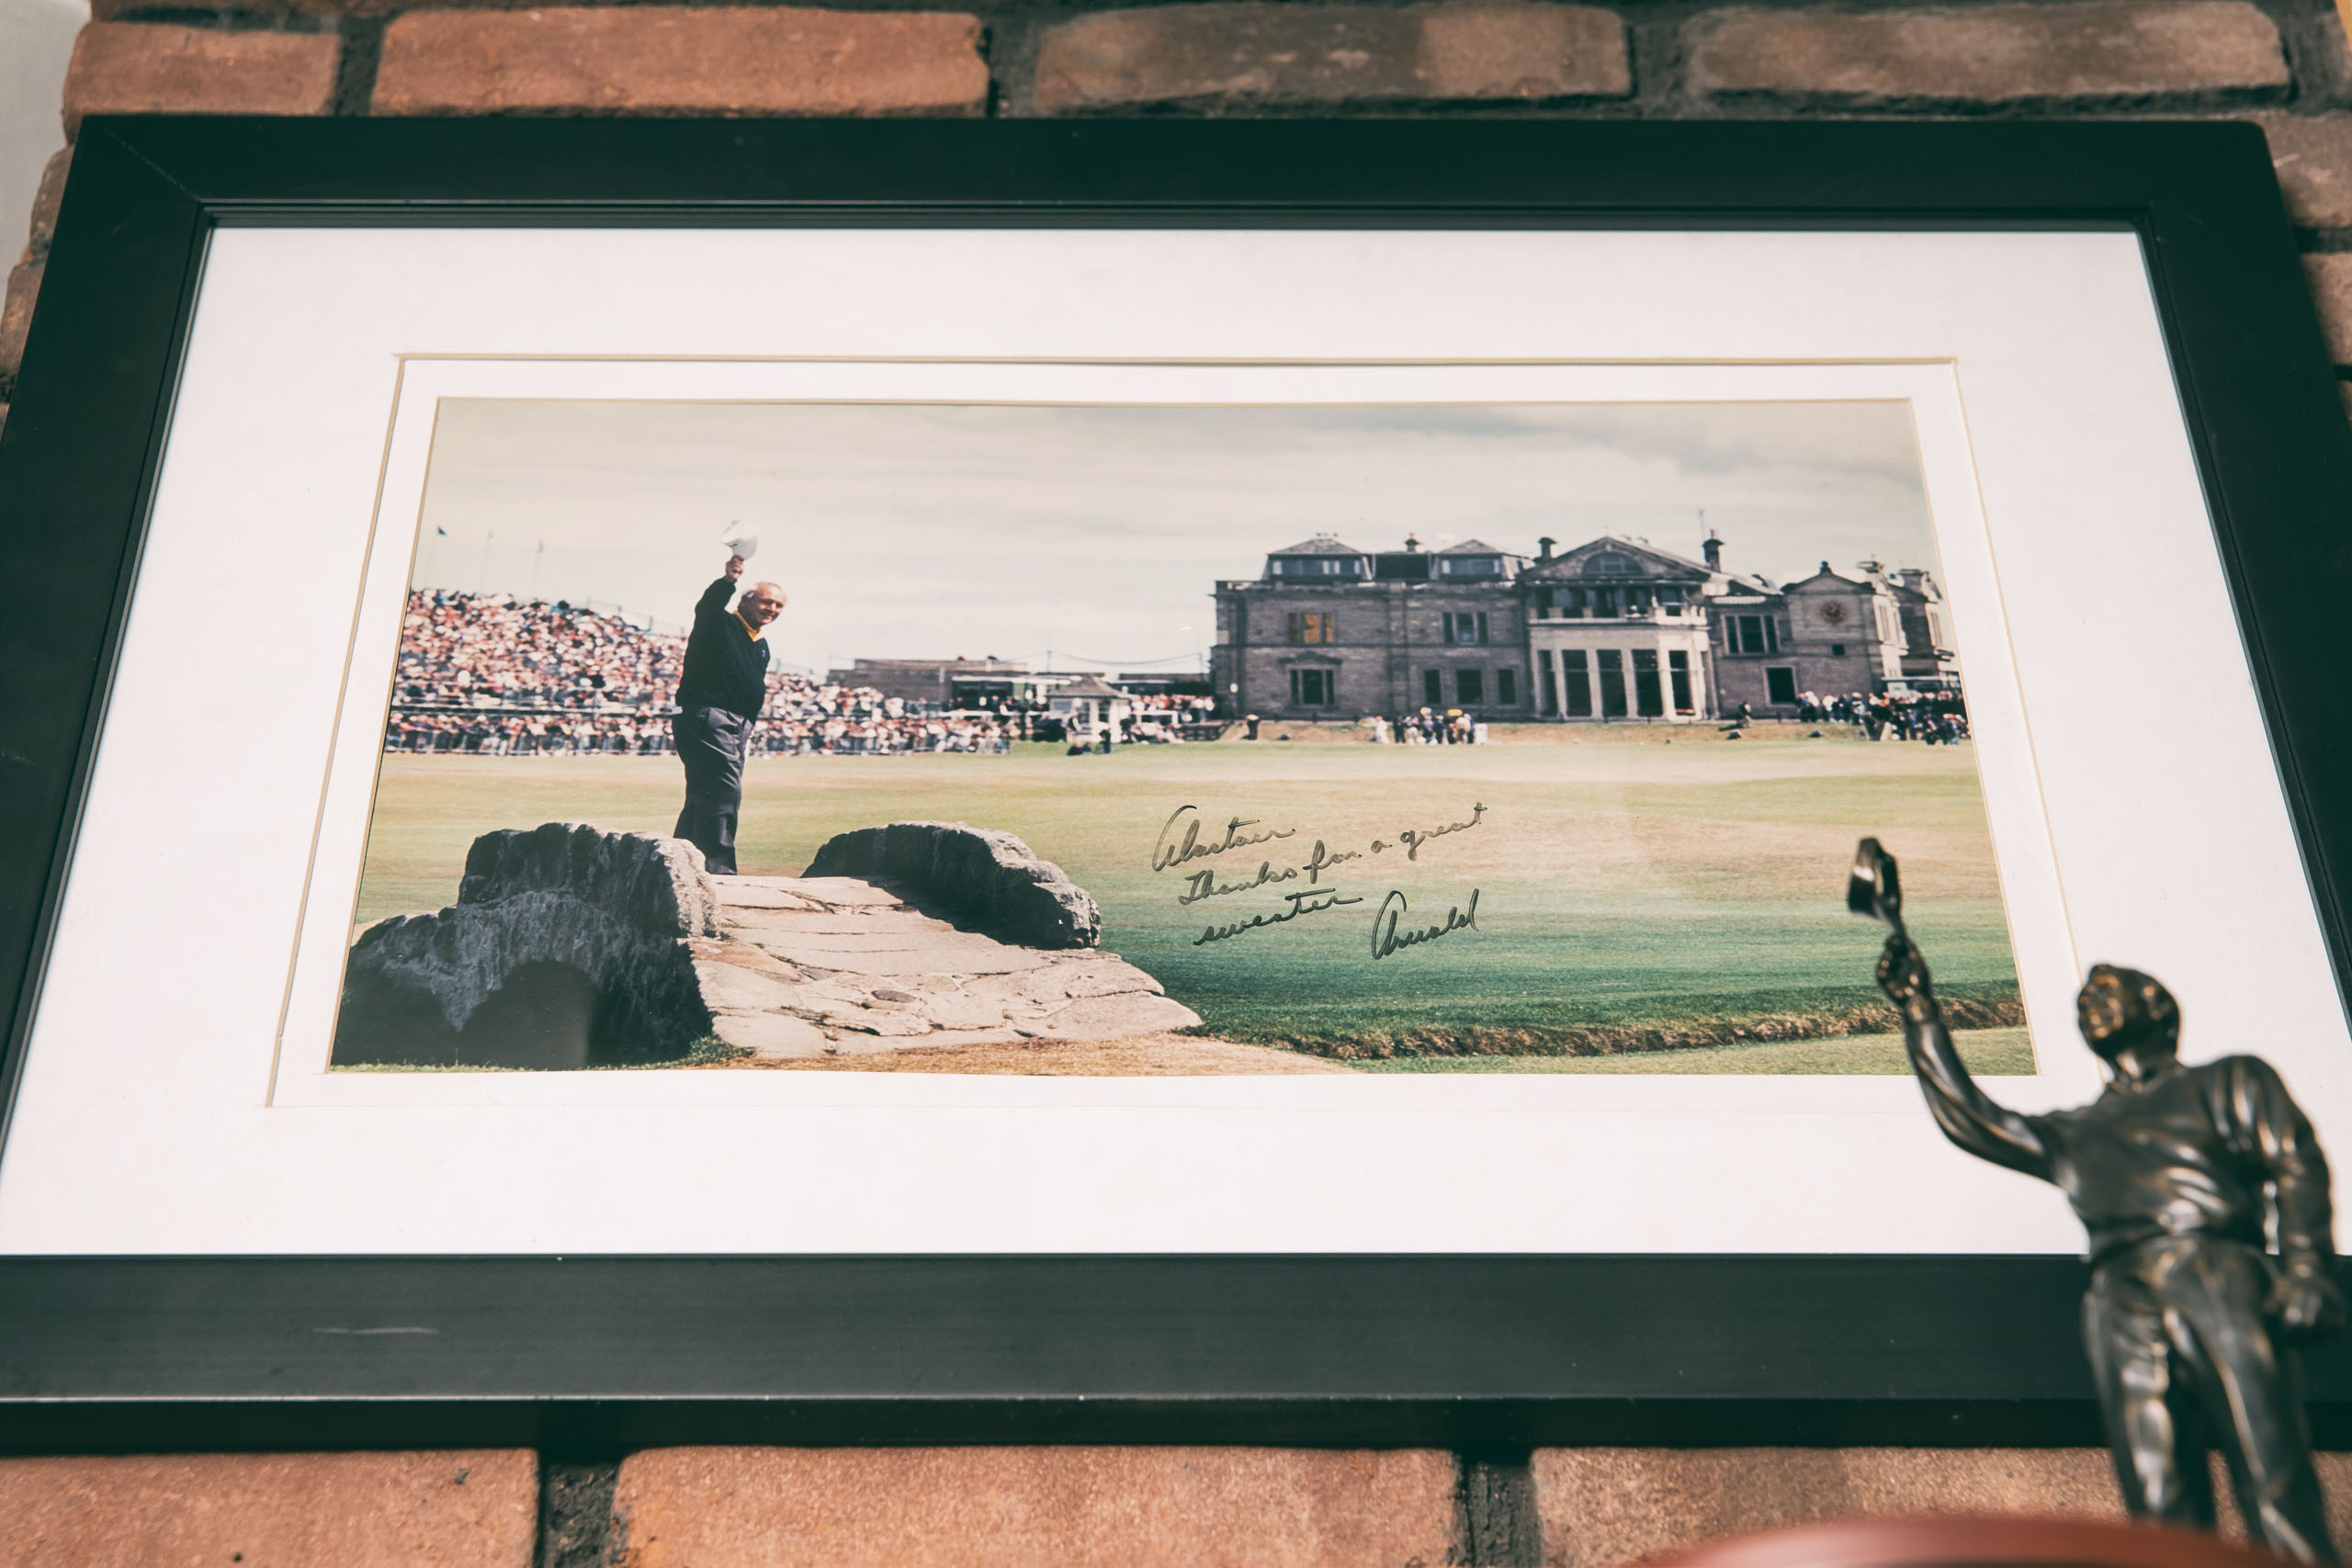 Arnold Palmer Autographed Open Championship Photo 1995. Photo by Todd Rosenberg.